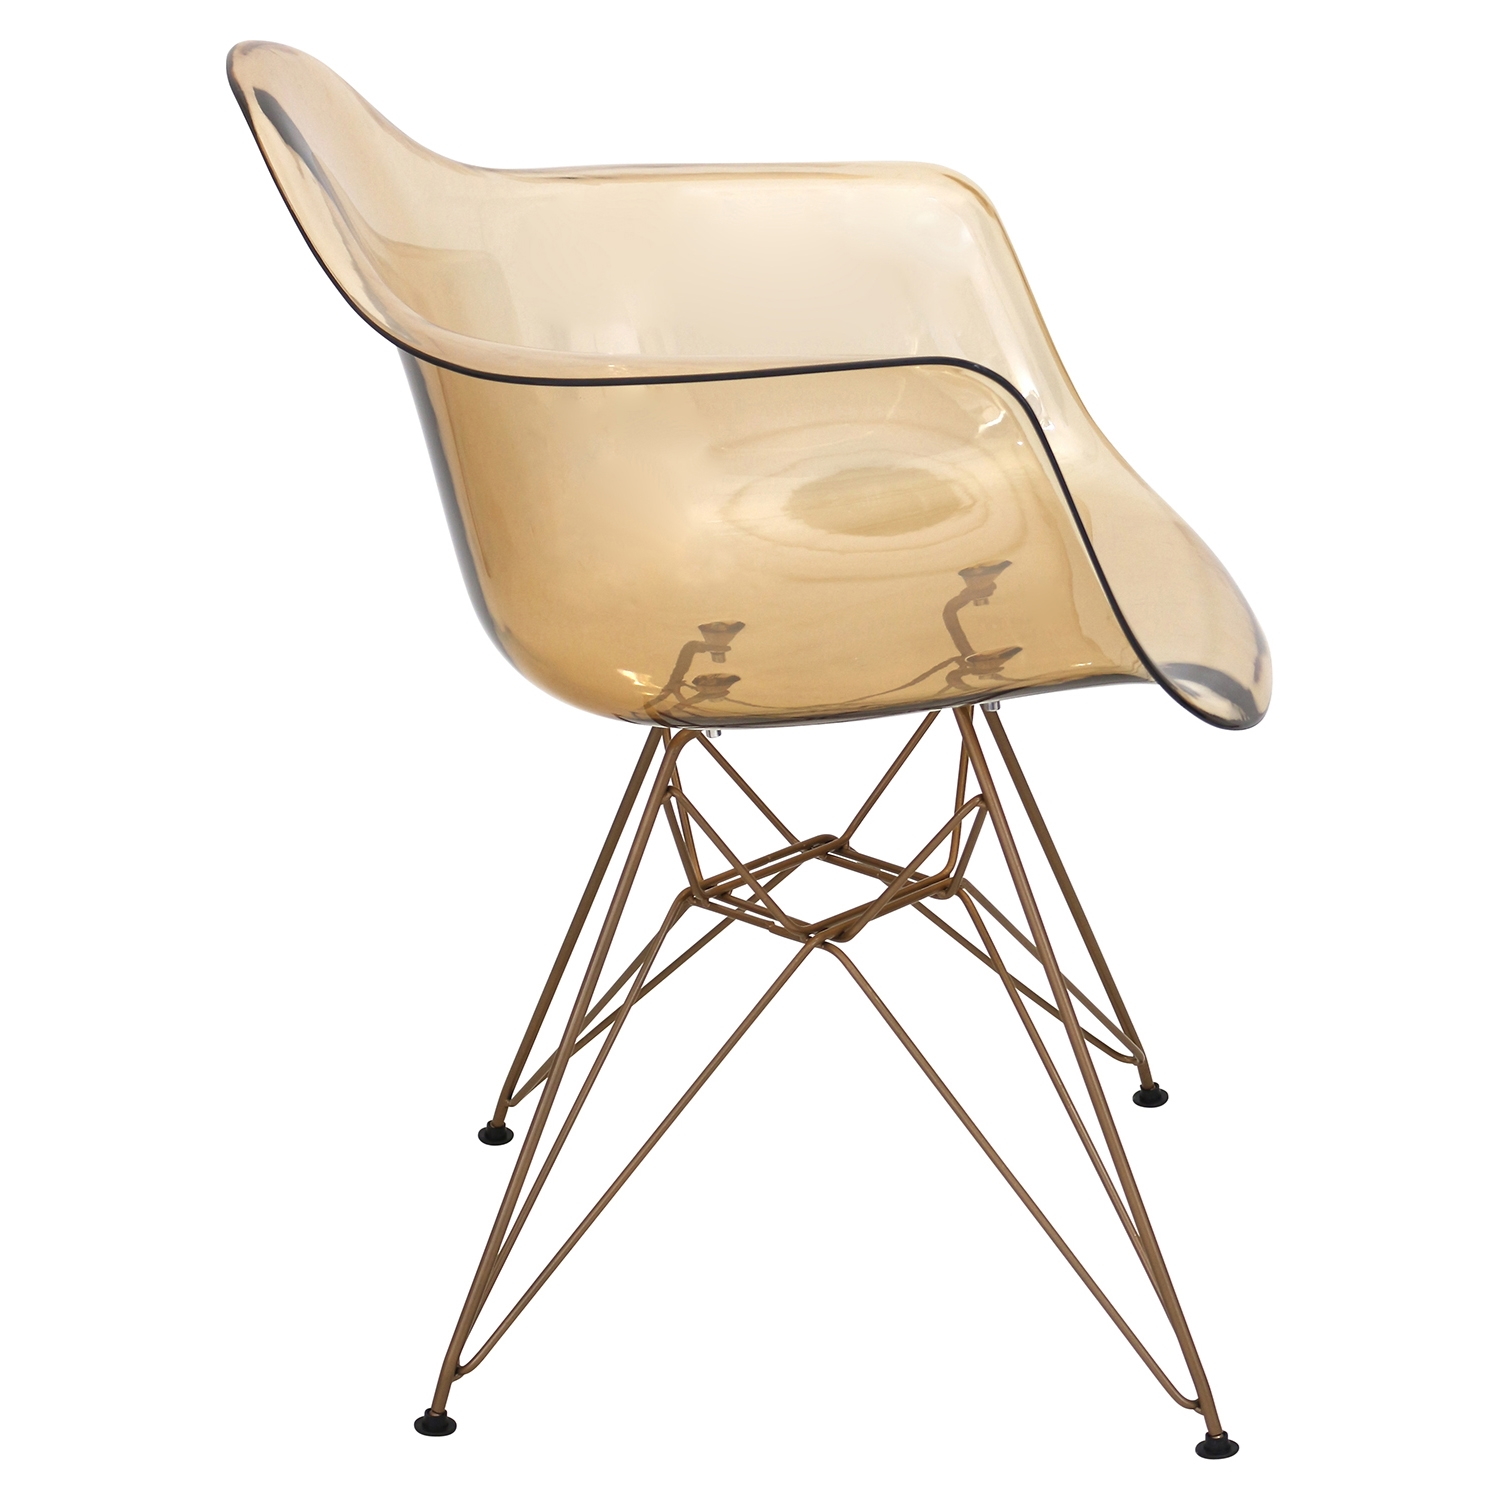 Neo Flair Chair - Amber, Copper - LMS-CH-NFLPC-AM-CU